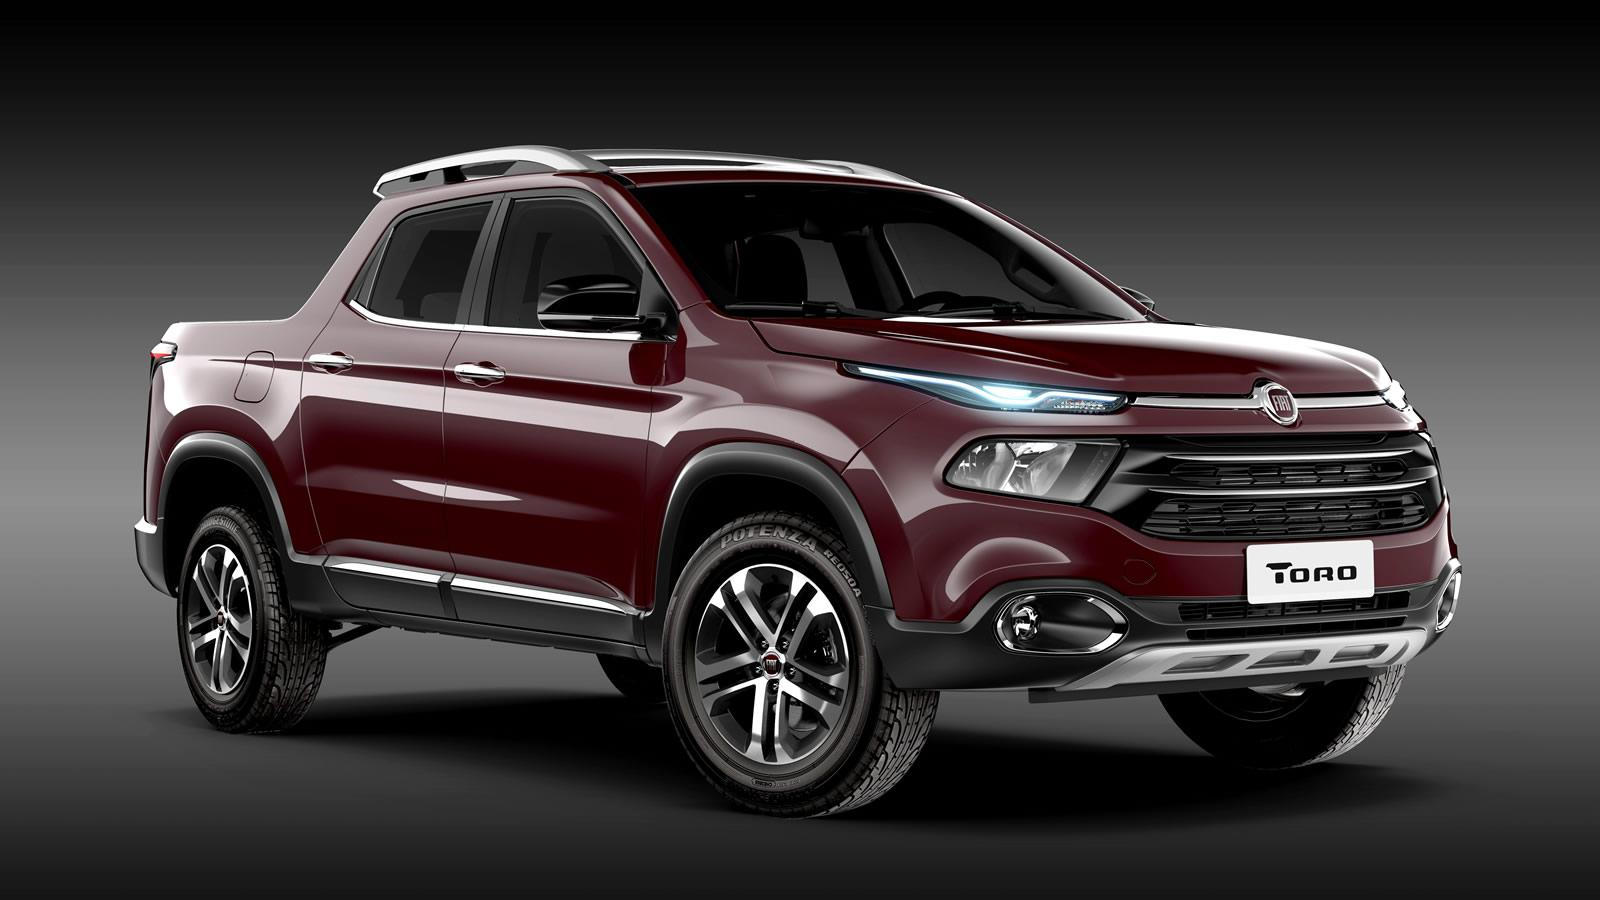 This Is The All New Fiat Toro Pick Up additionally Ford Ranger 4x4 Groupc er Sa Avis besides 2014 Jeep Grand Cherokee Summit 4x4 Suv in addition 11 Diesel Truck Failures You Got To See To Believe likewise 1403 2002 Gmc Yukon Denali. on jeep transmission